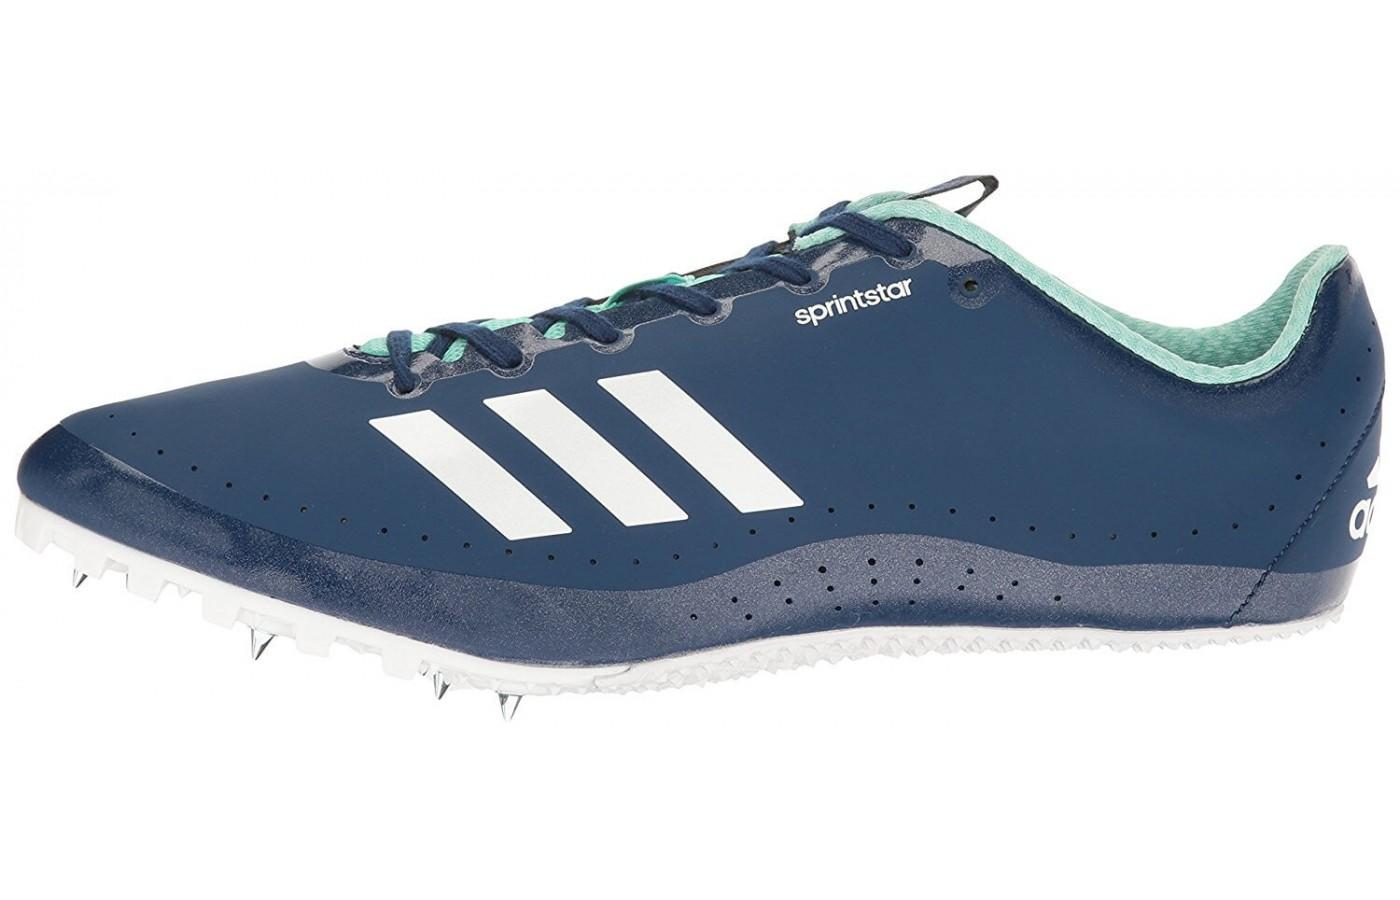 new products c9778 9287a ... The Adidas Sprintstar is designed for racing up to 400 meters